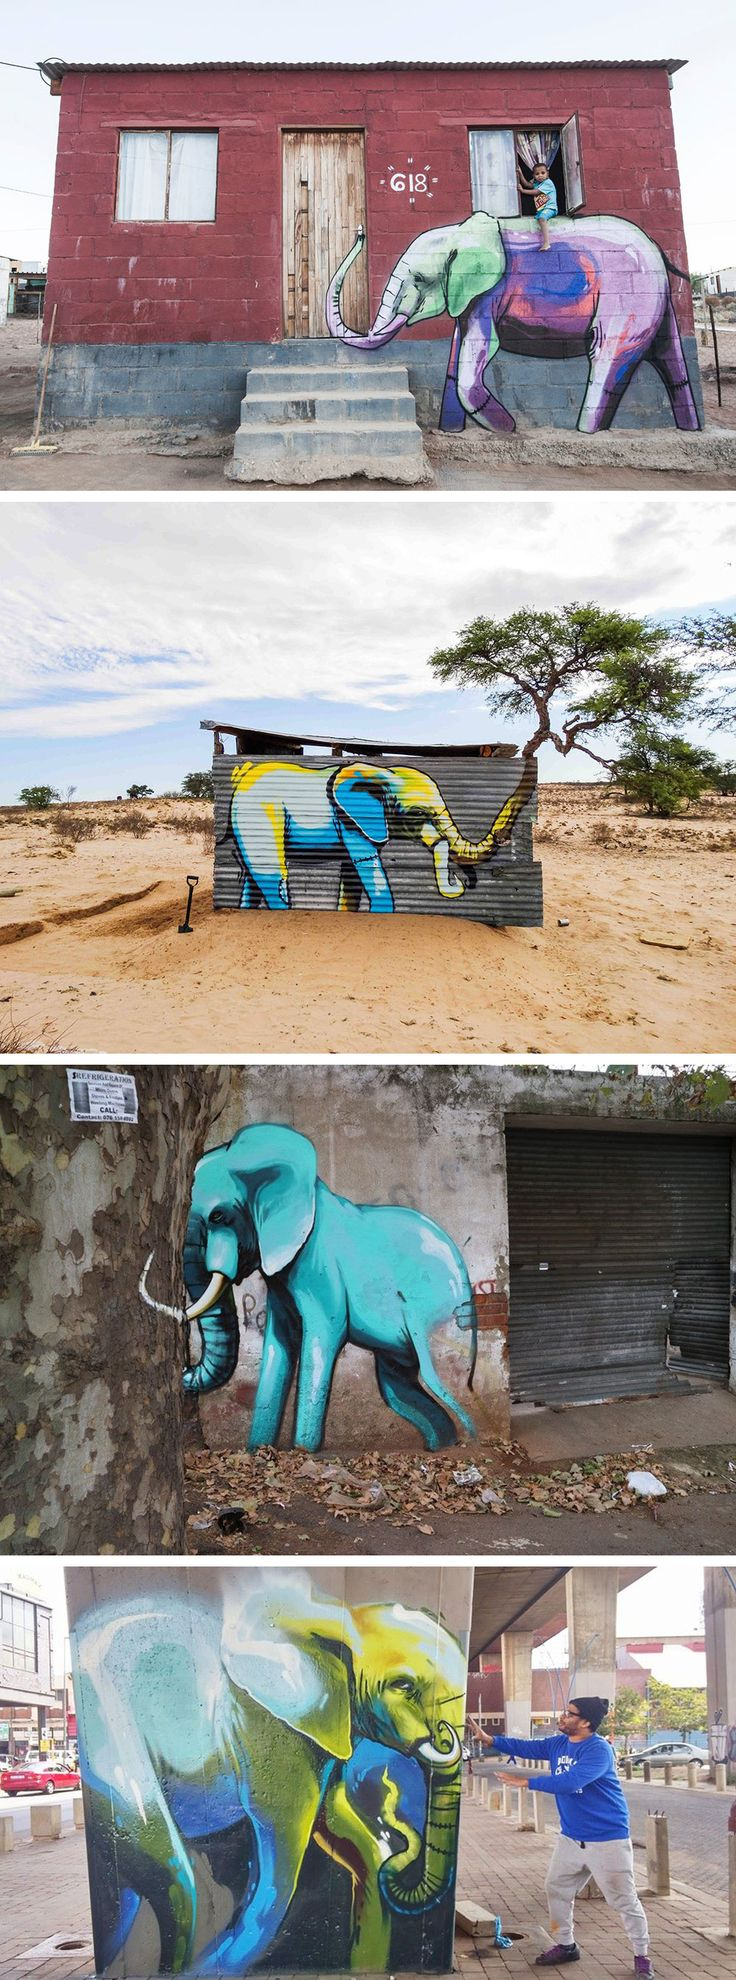 Site-Specific Elephant Murals on the Streets of South Africa by Falko One